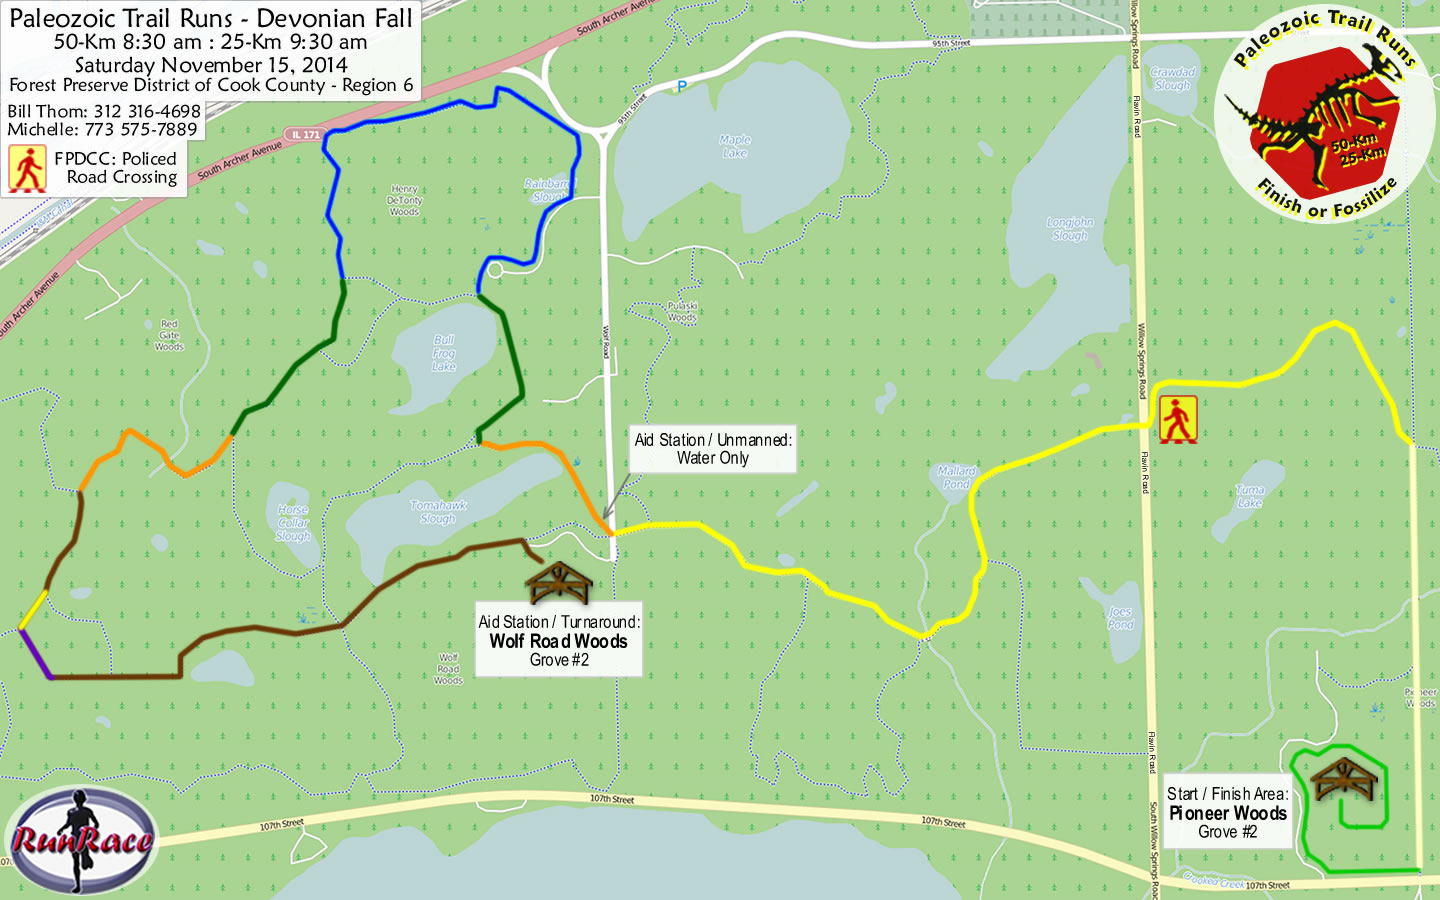 [racecourse map: Paleozoic Trail Runs - Devonian Fall]